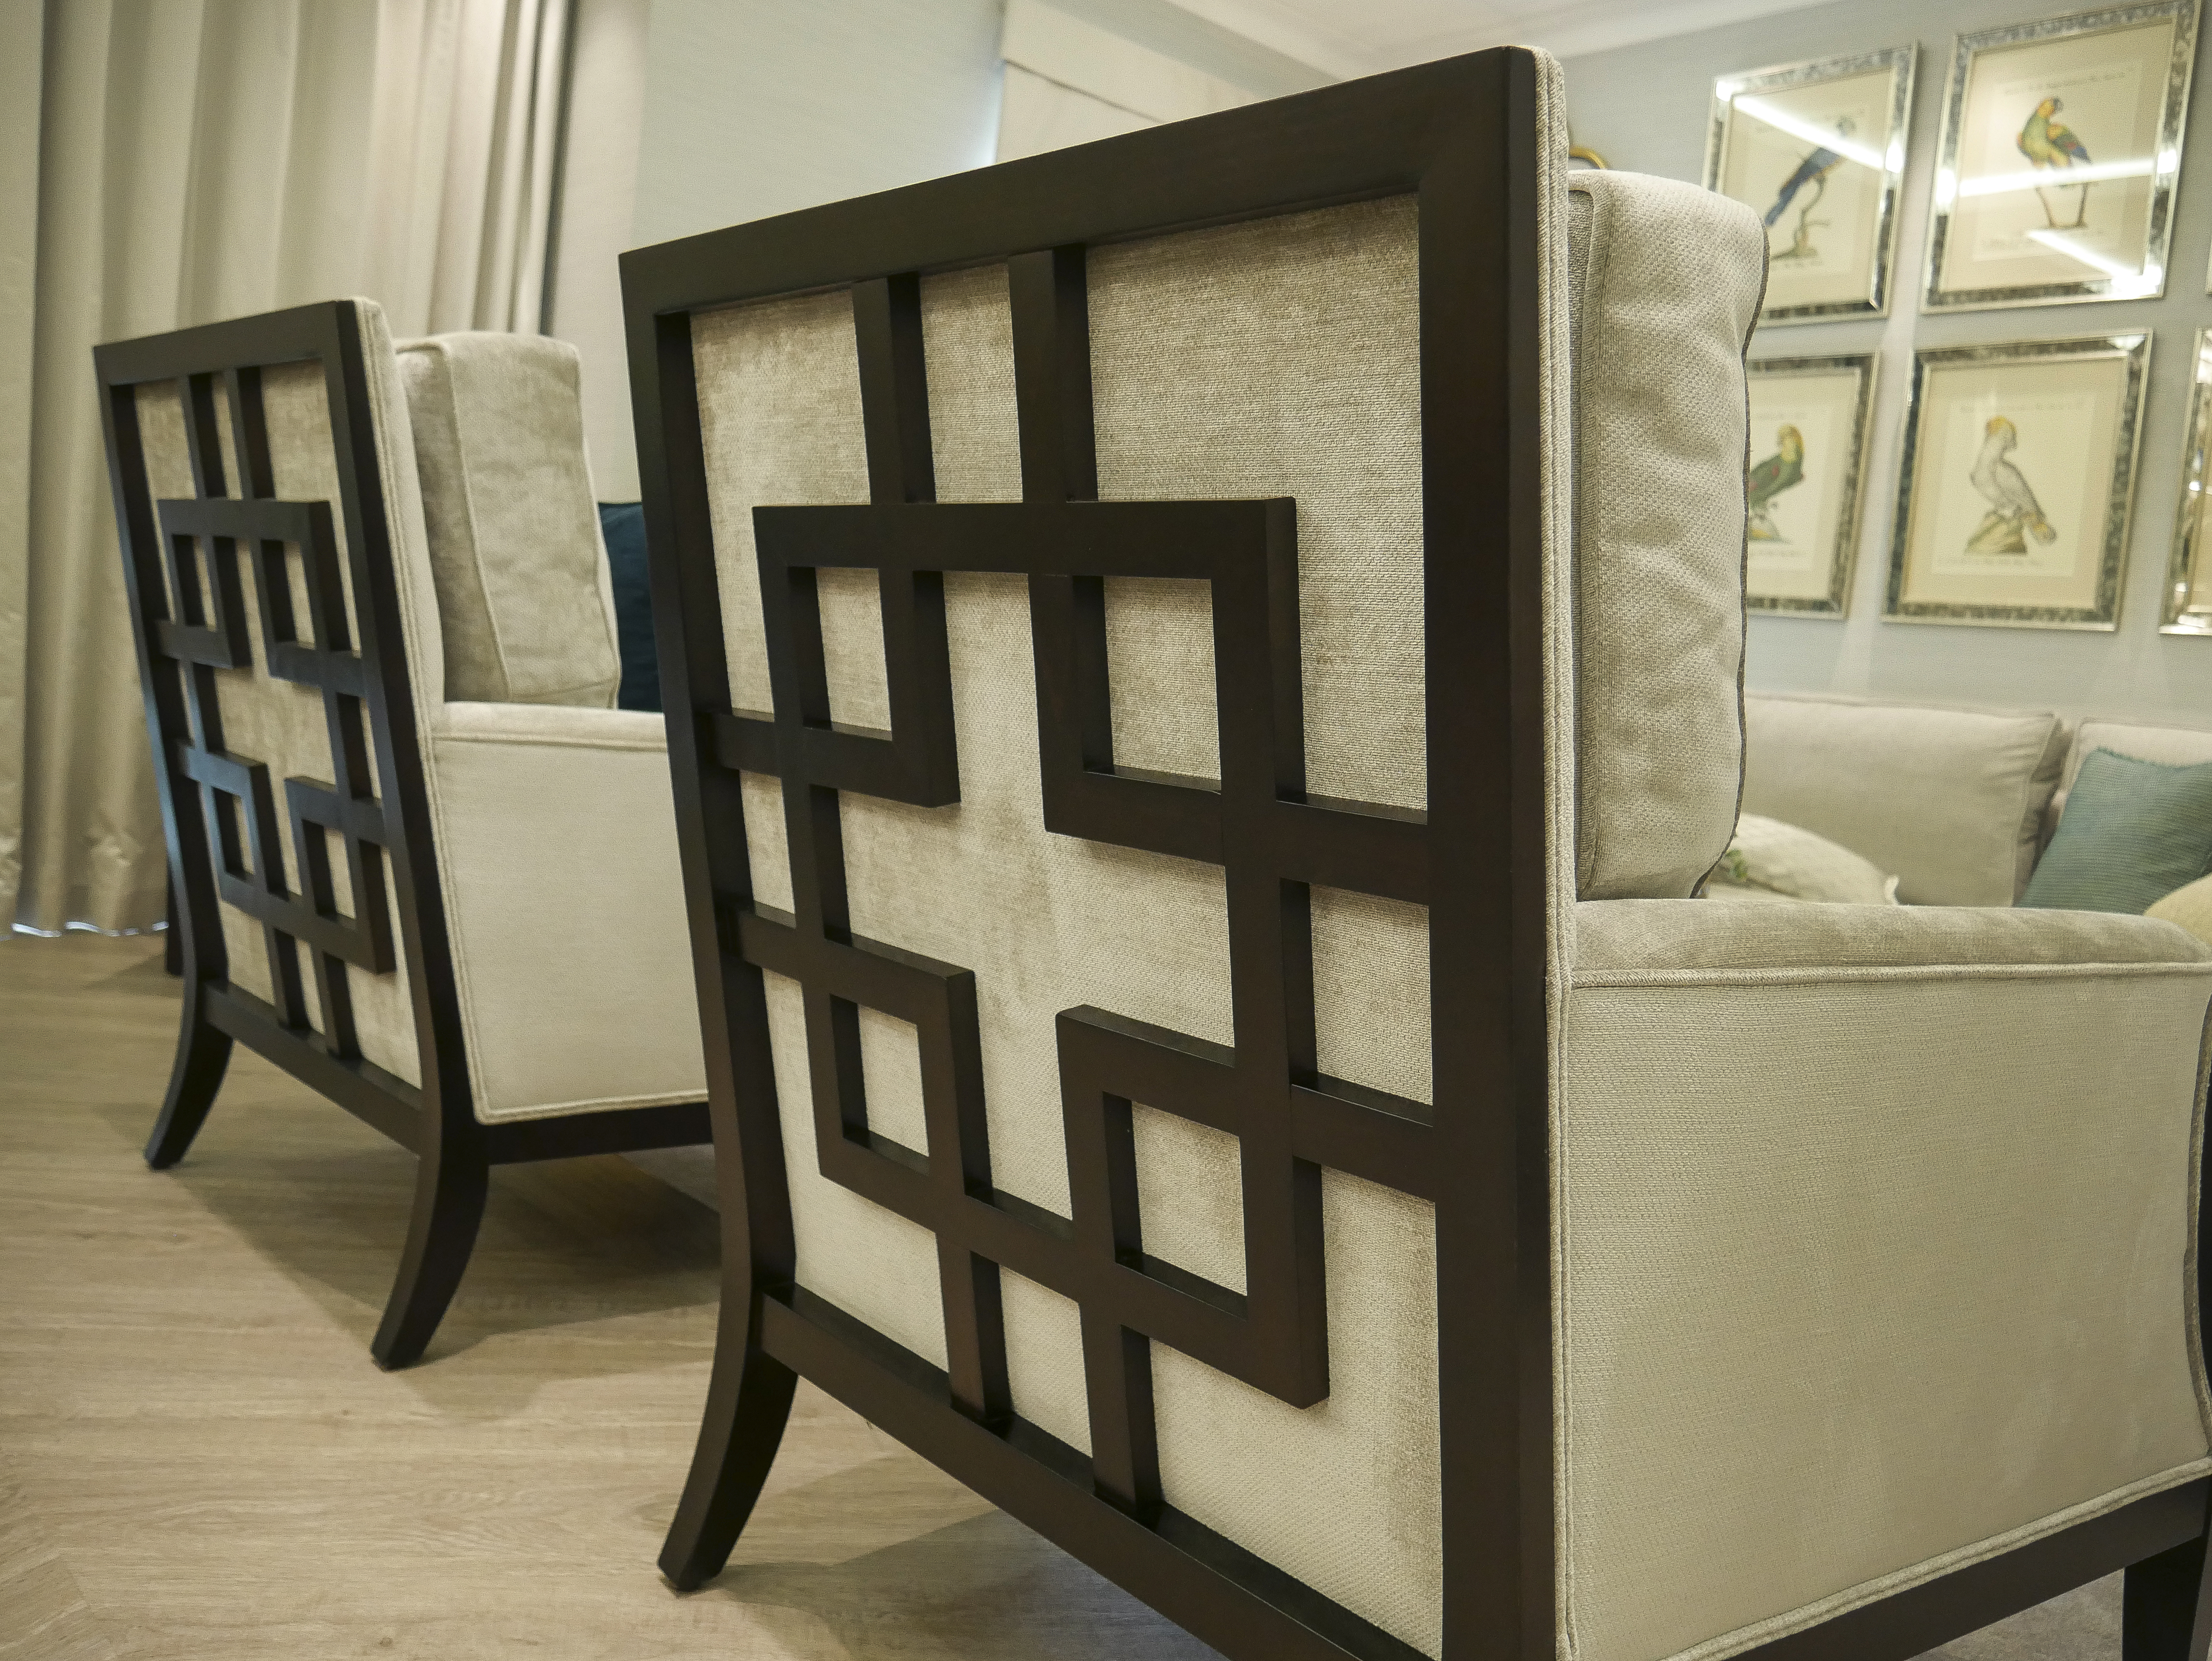 furniture detail by Atelier